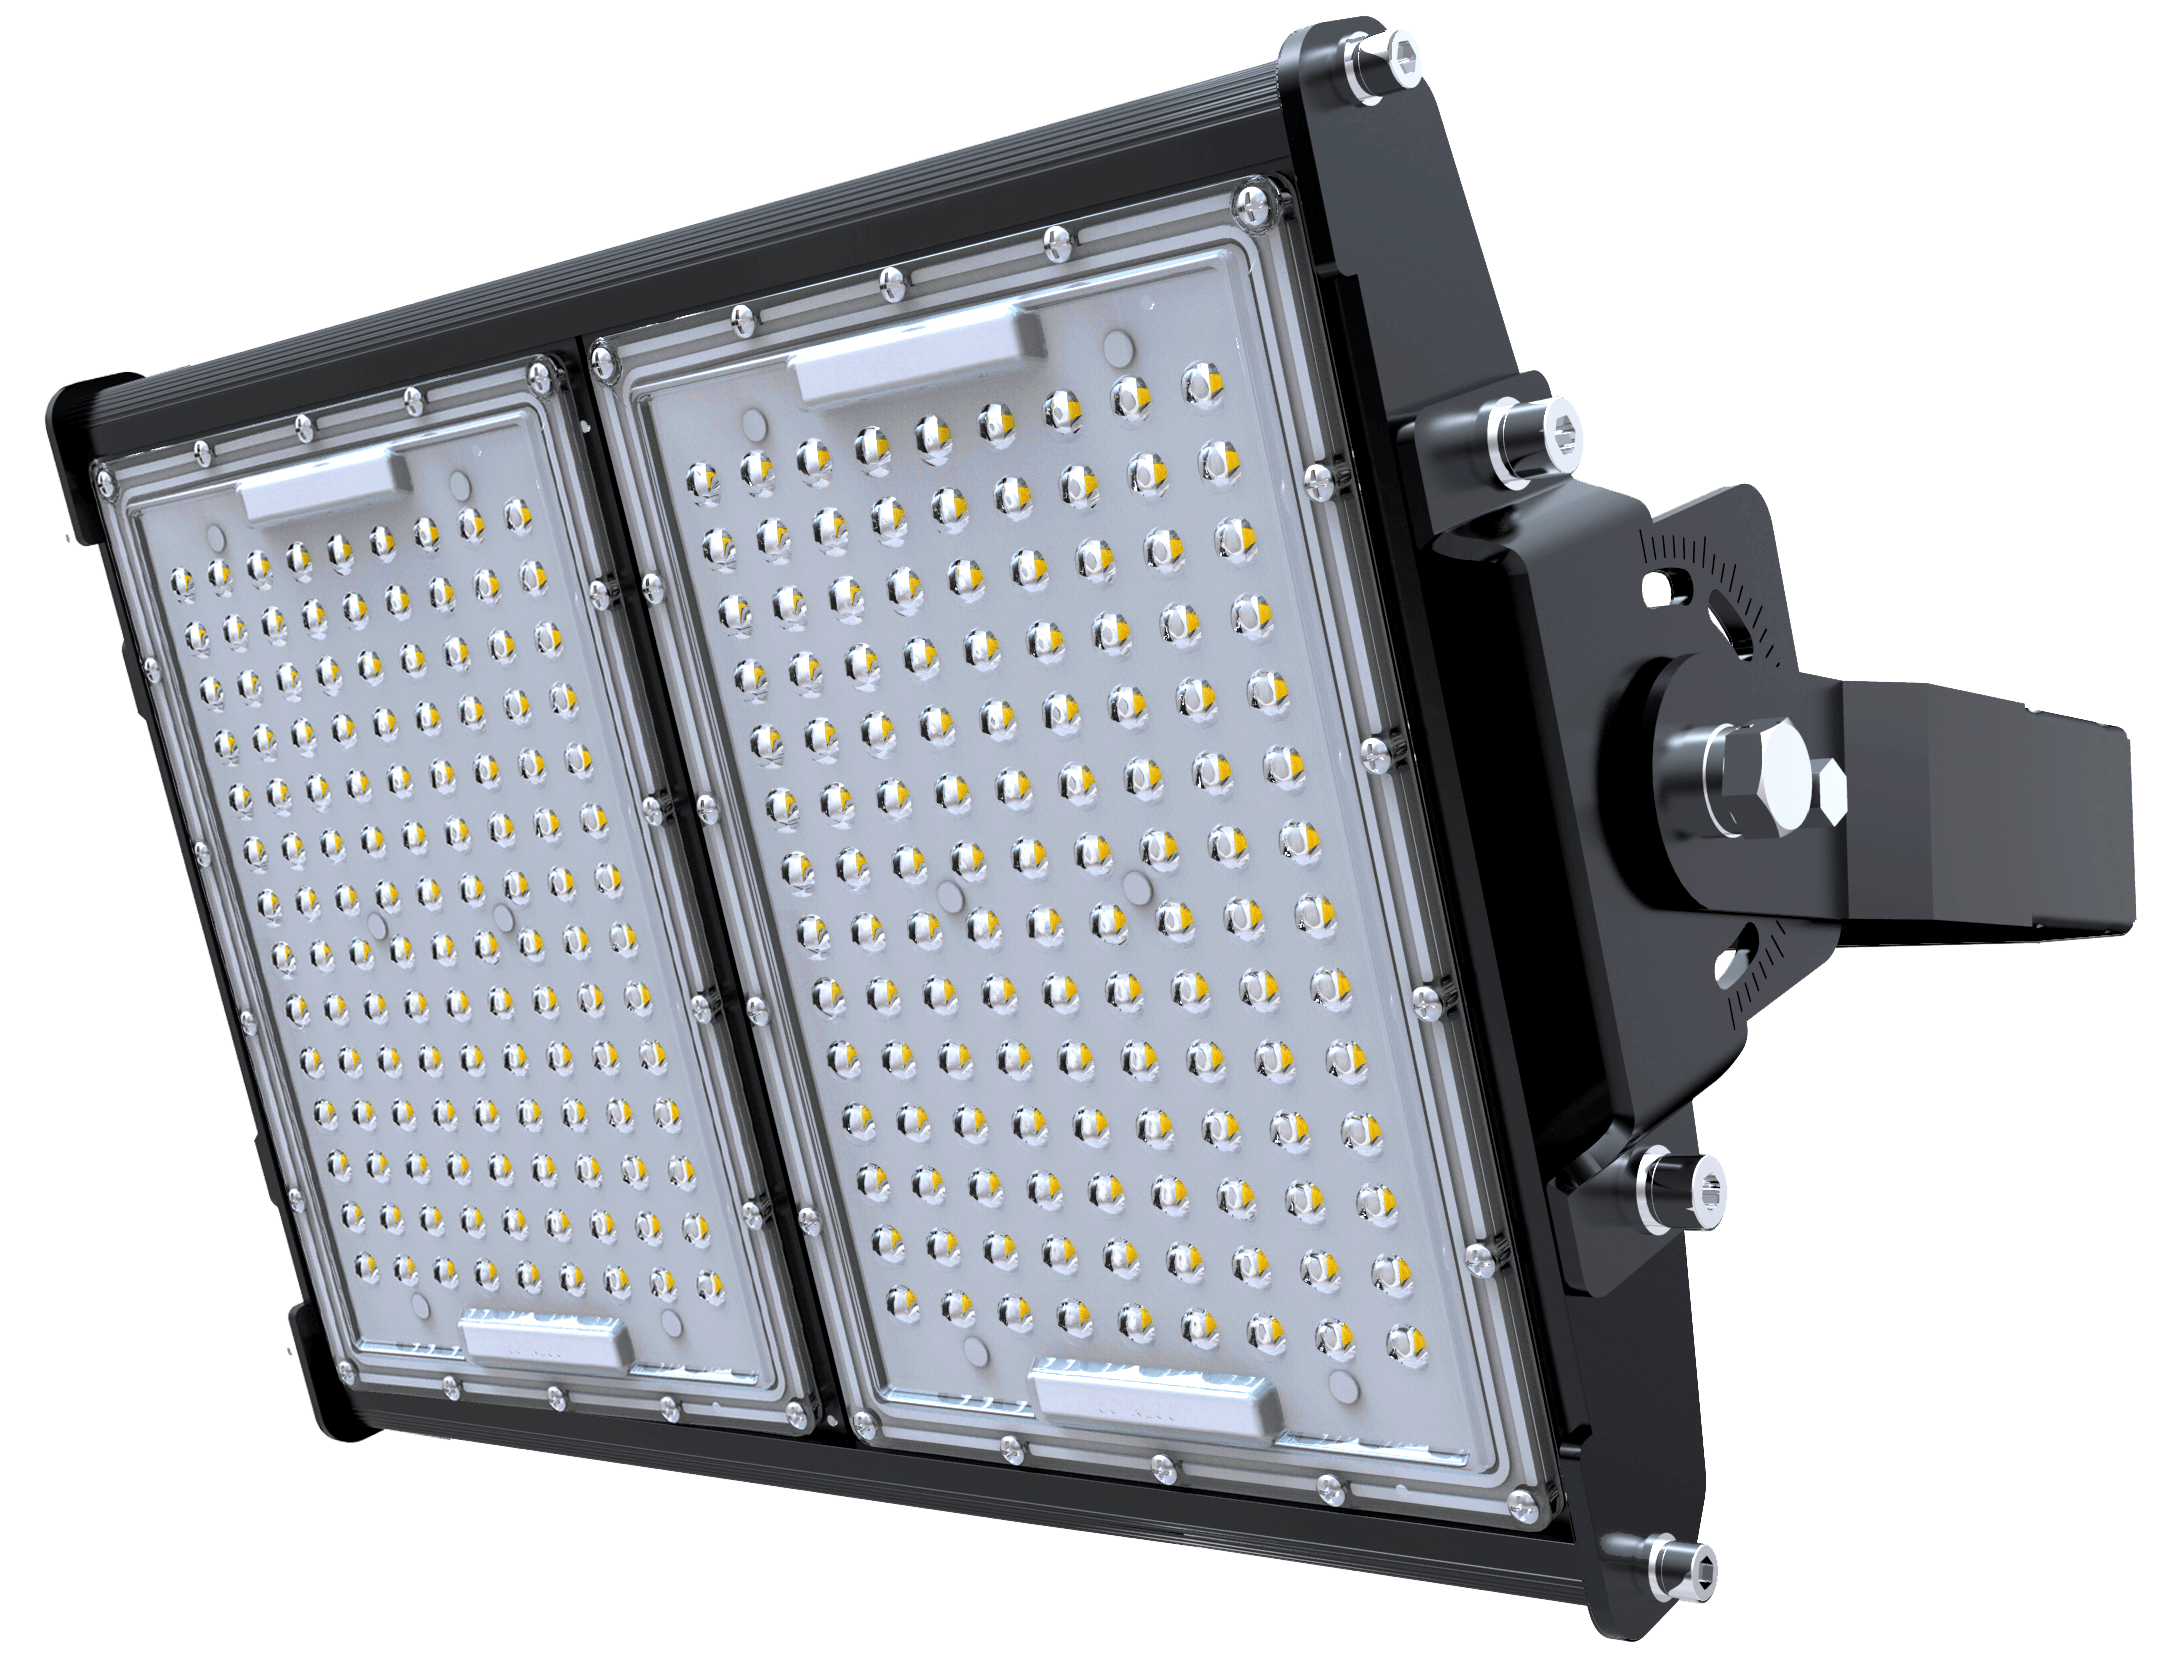 LED Stadium Light 240W, Super Bright Outdoor Flood Light , IP65 Waterproof